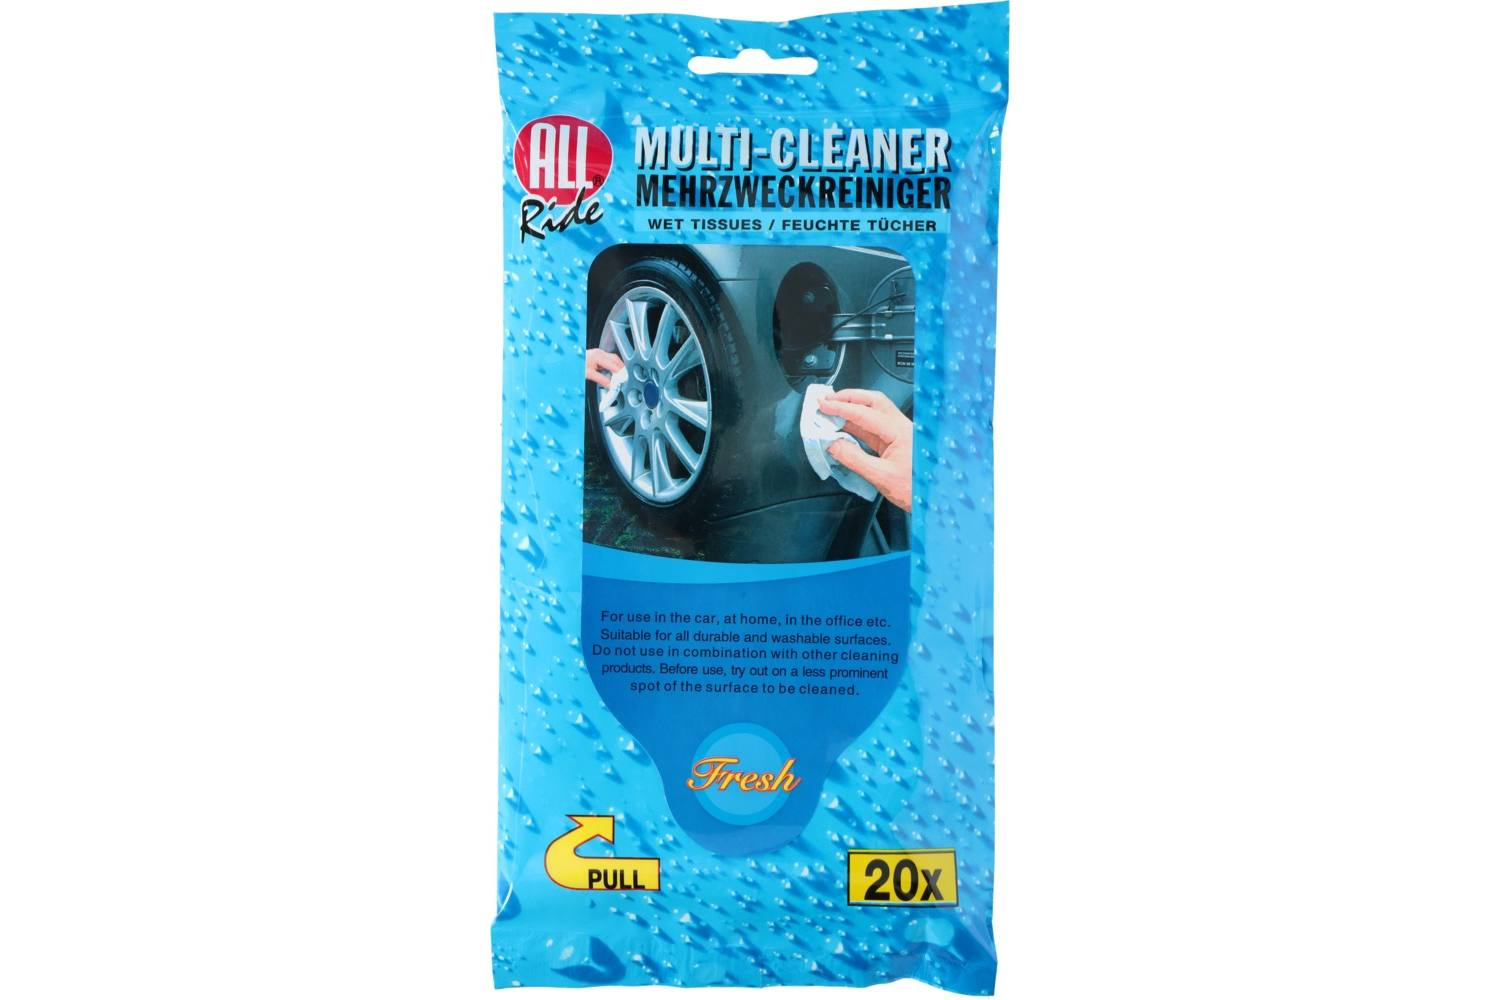 Cleaner, AllRide, multi reiniger, wet tissues, 20 1